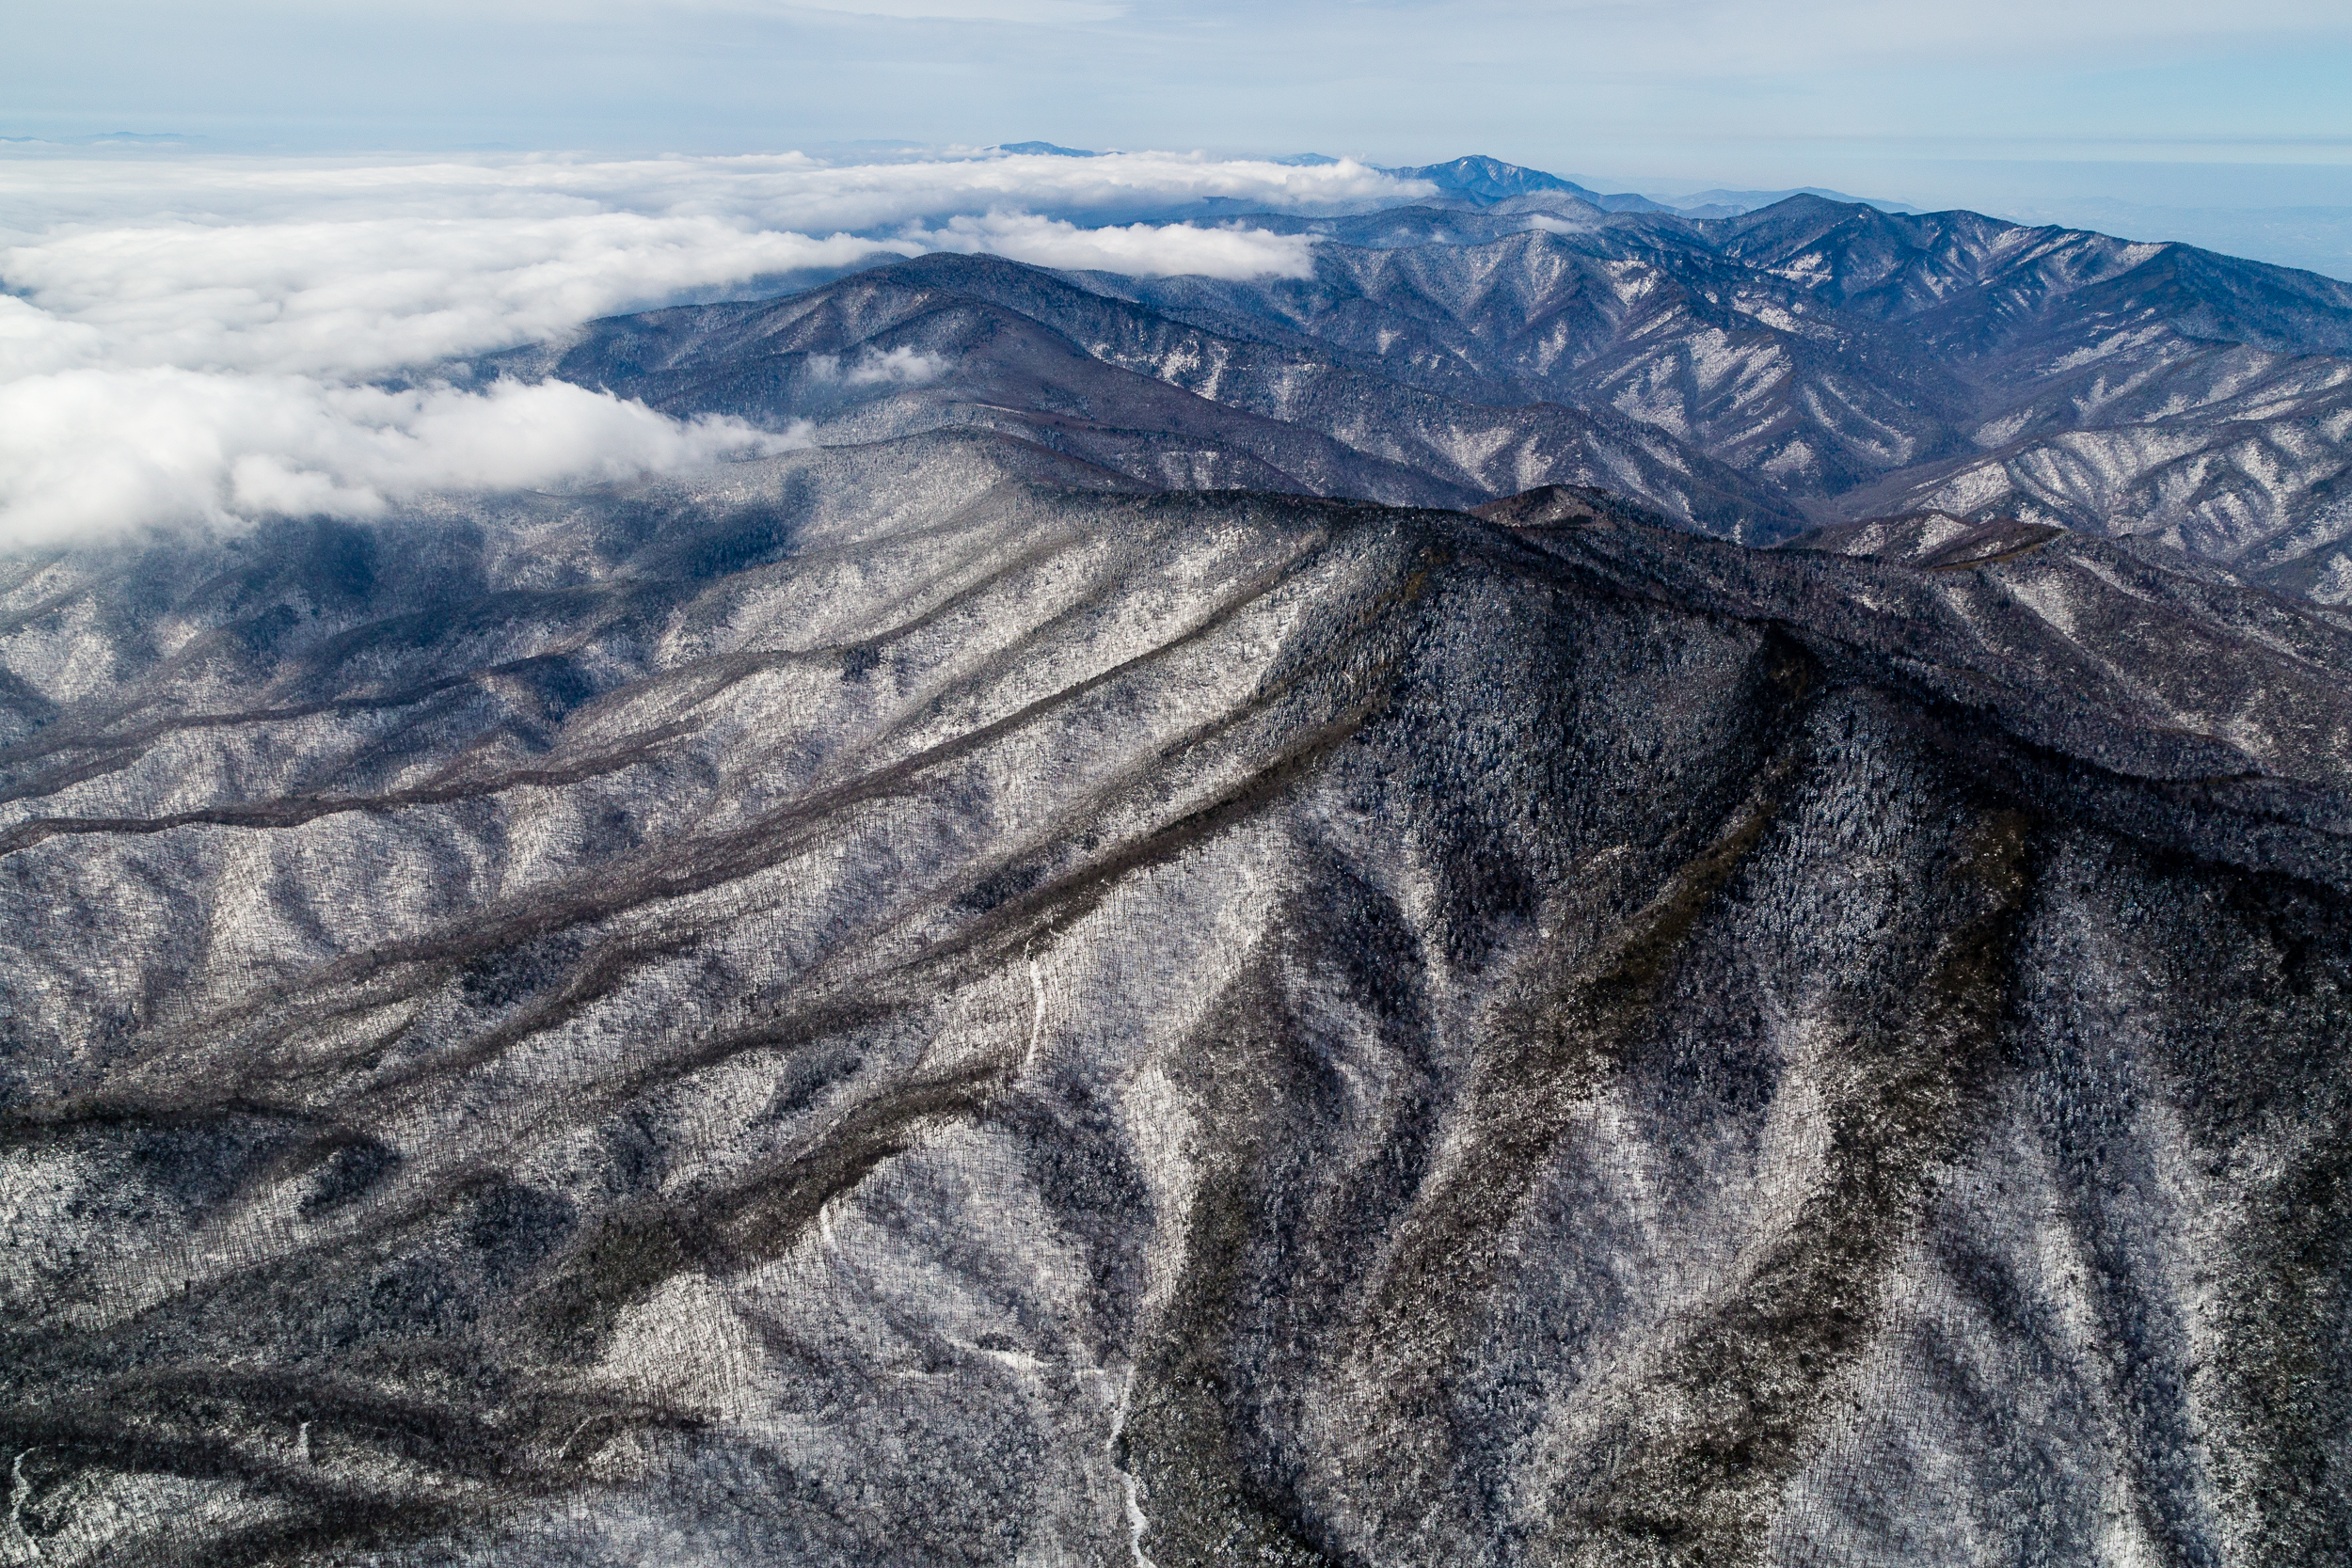 Winter, Great Smoky Mountains.